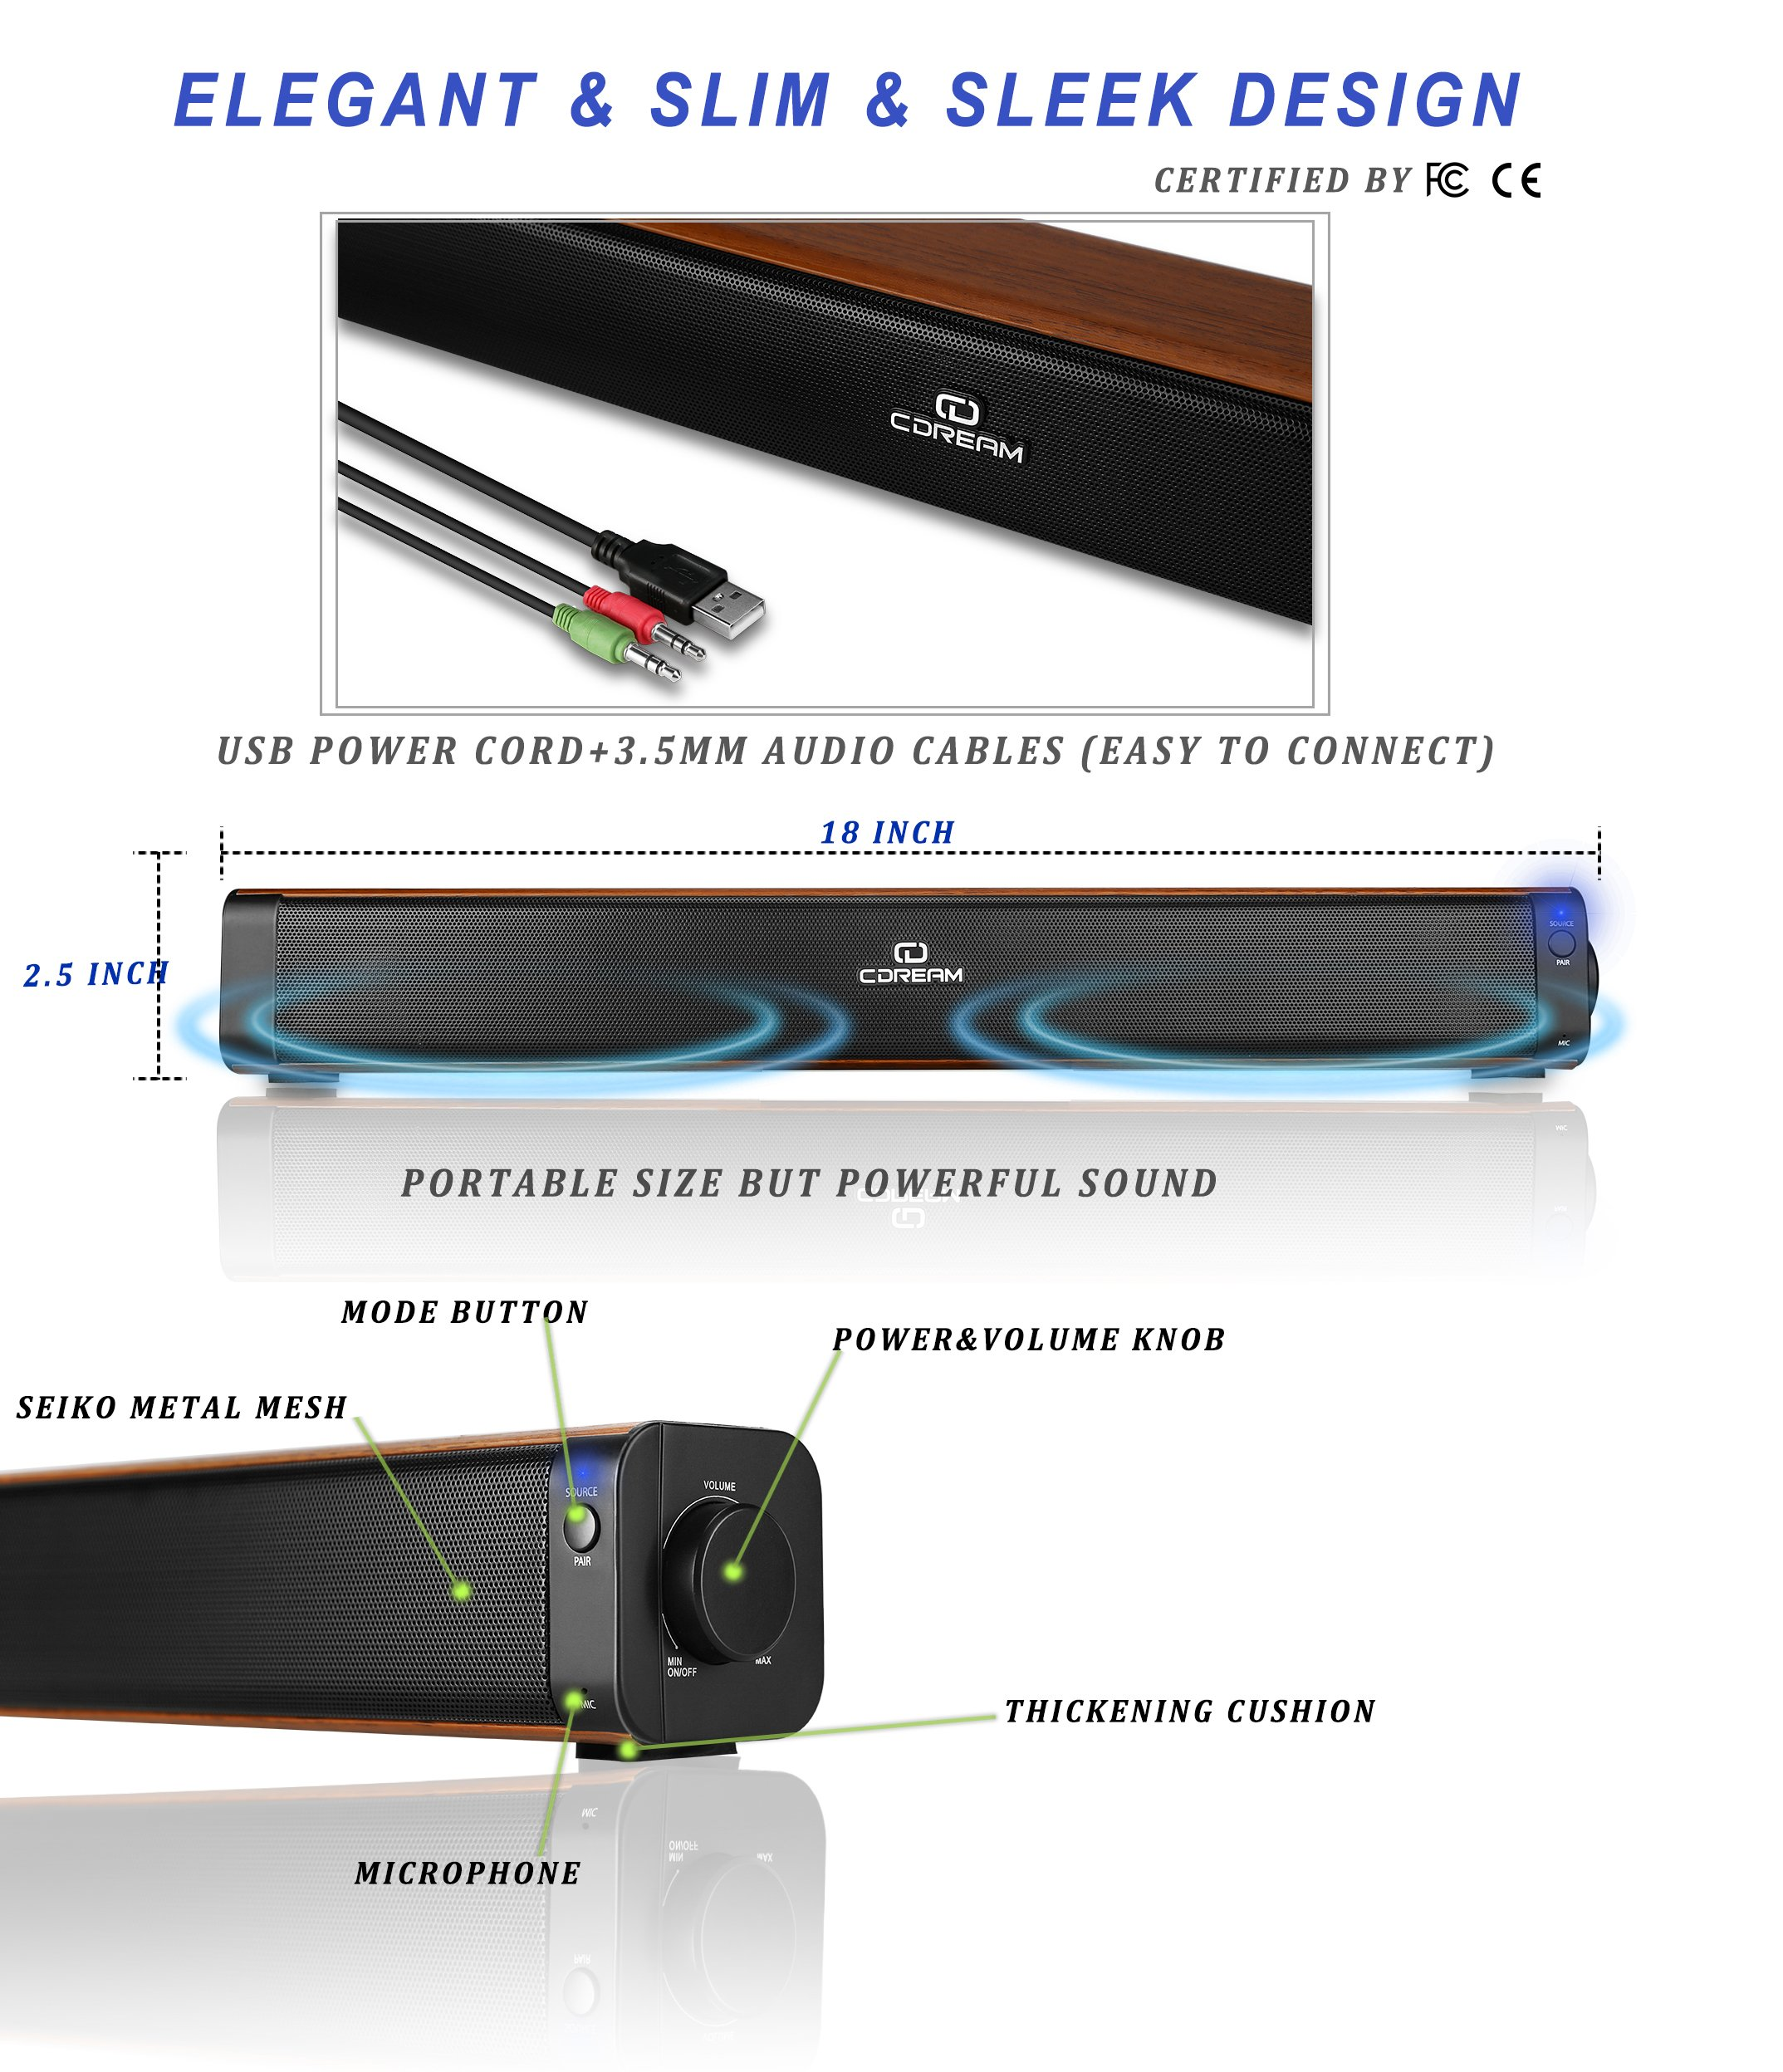 Sound Bar Bluetooth Speaker Soundbar Wired And Wirless 18'' Bluetooth Computer Speaker With Subwoofer Surround Stereo Sound USB Powered For Computer Laptop Desktop Cellphone Tablet Game Echo by CD CDREAM (Image #5)